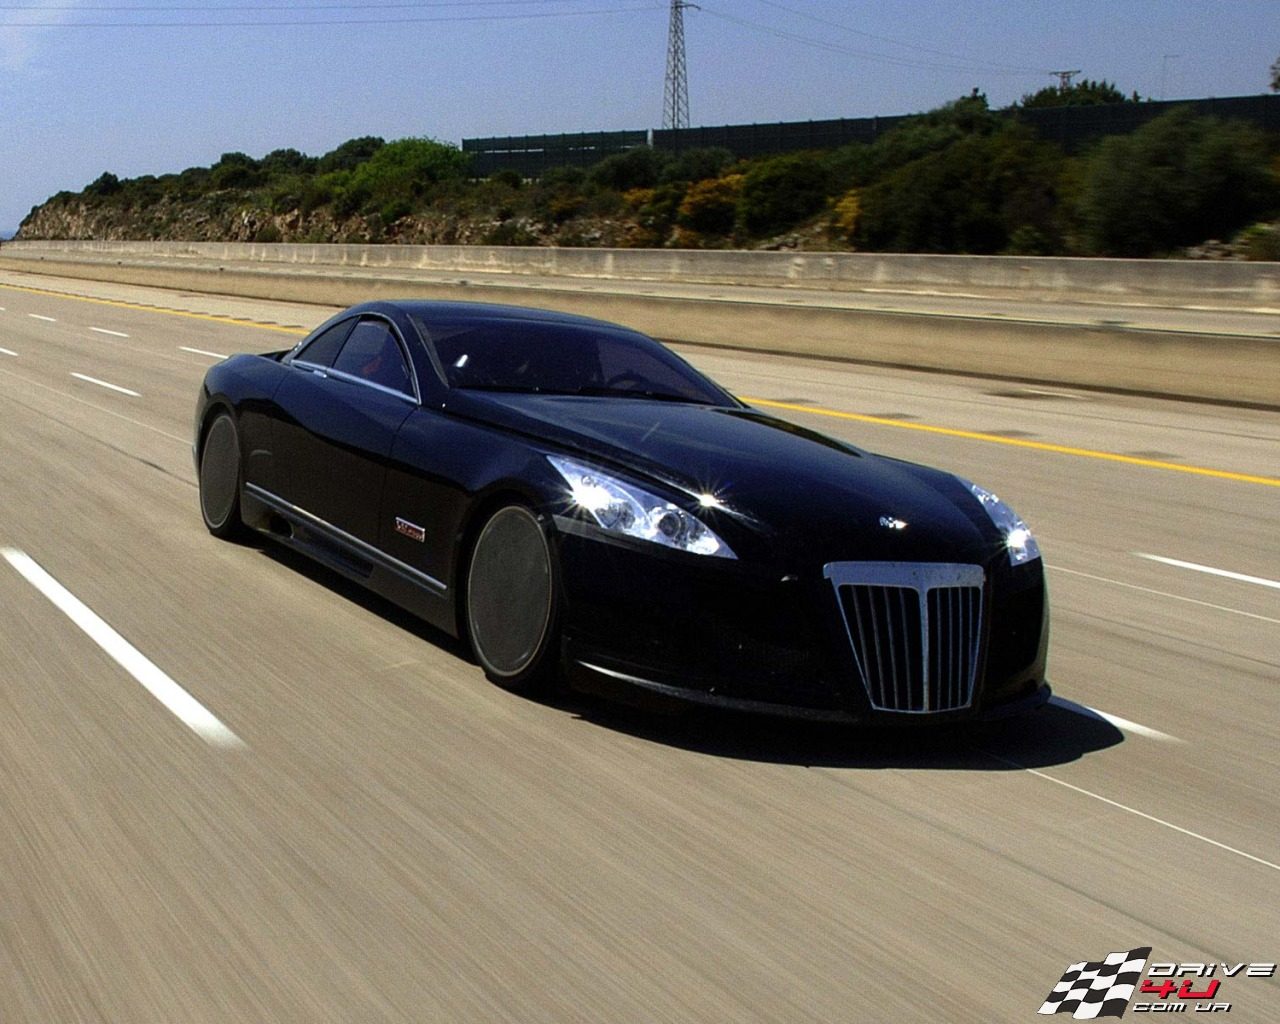 8 Solid Reasons That Makes Maybach Exelero One of the Most Expensive Cars in the World